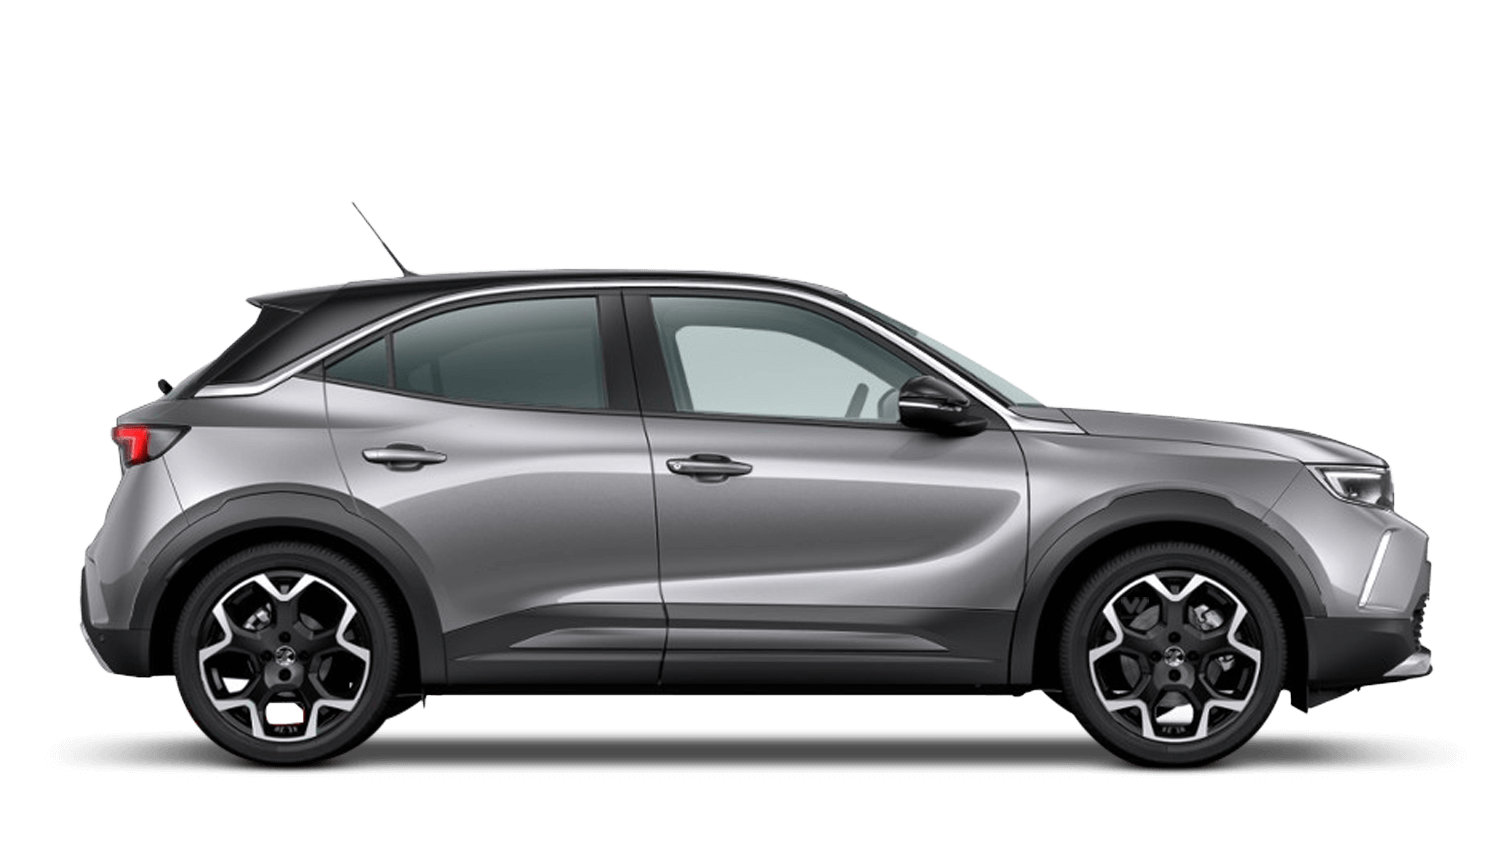 Quartz Grey (Metallic) All New Vauxhall Mokka